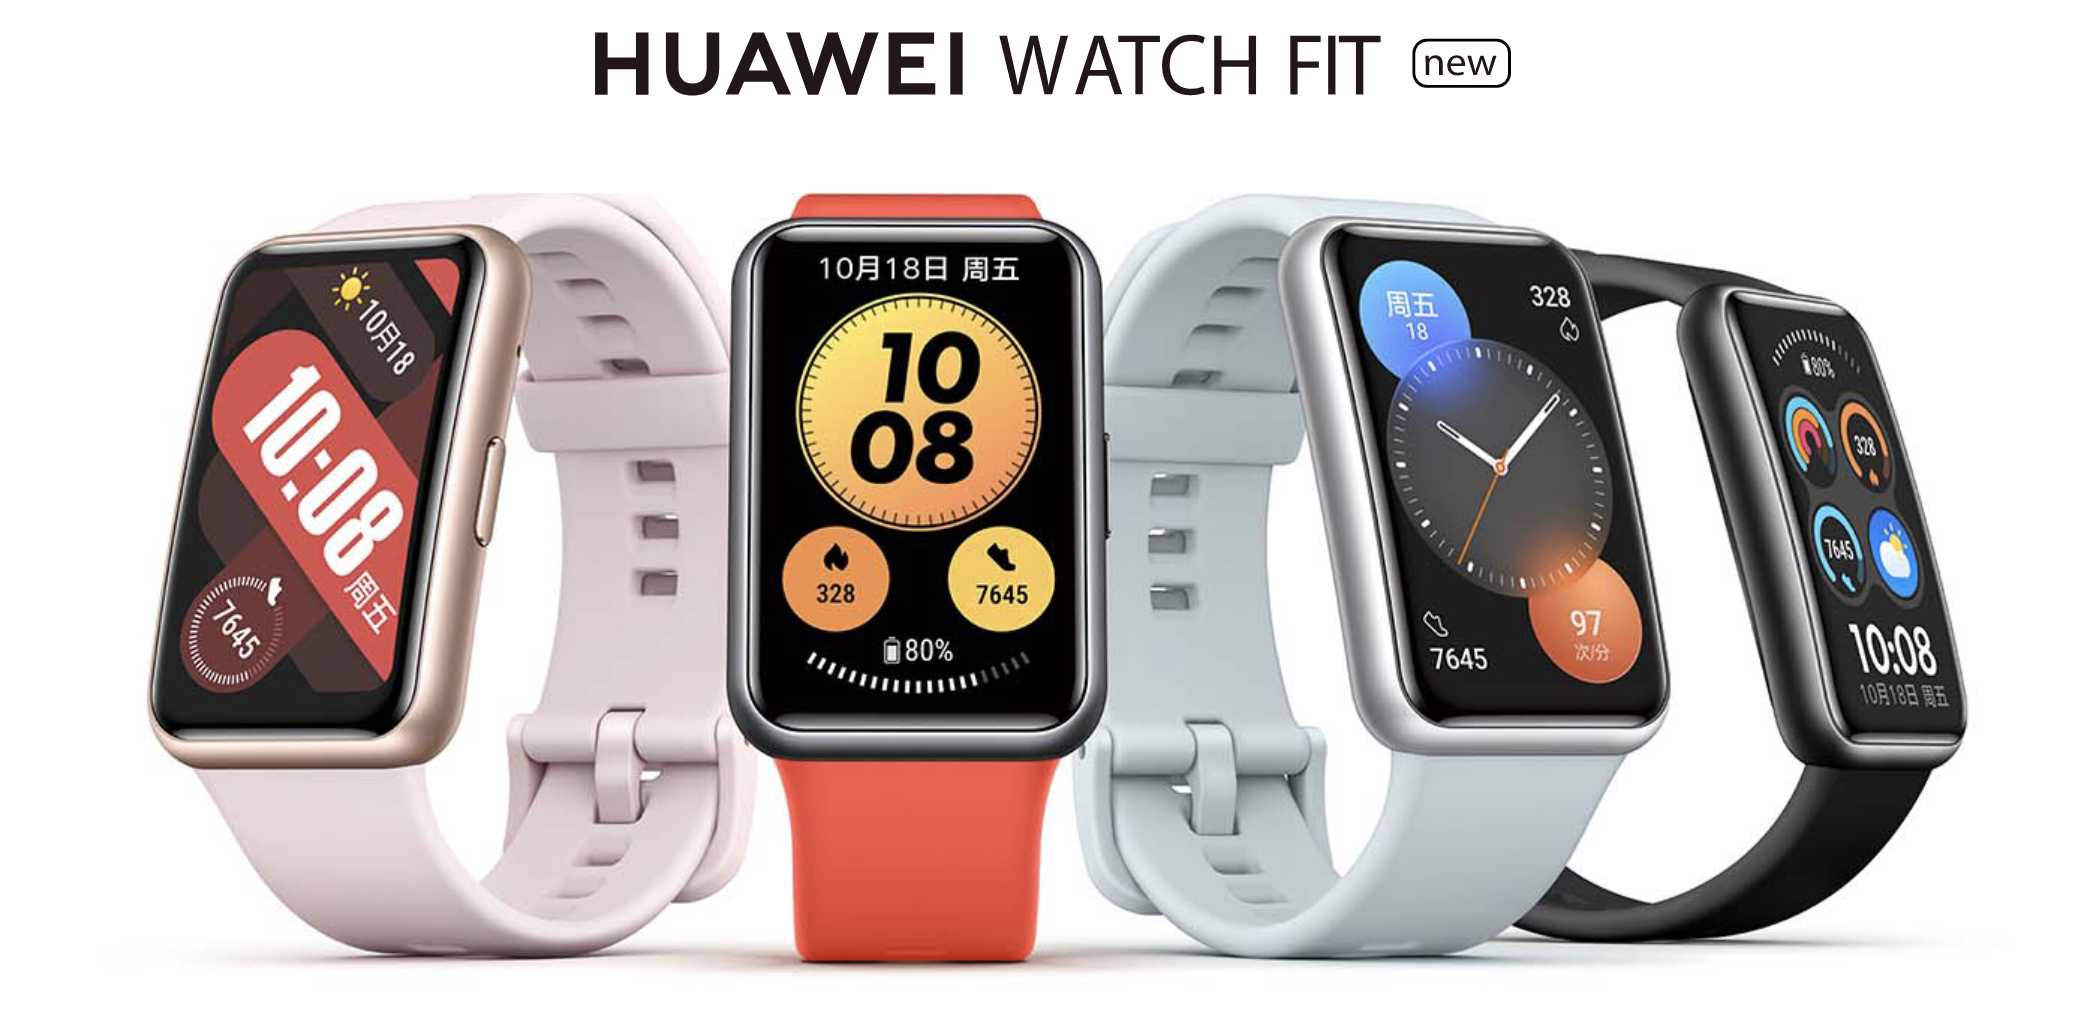 Huawei Watch Fit New.